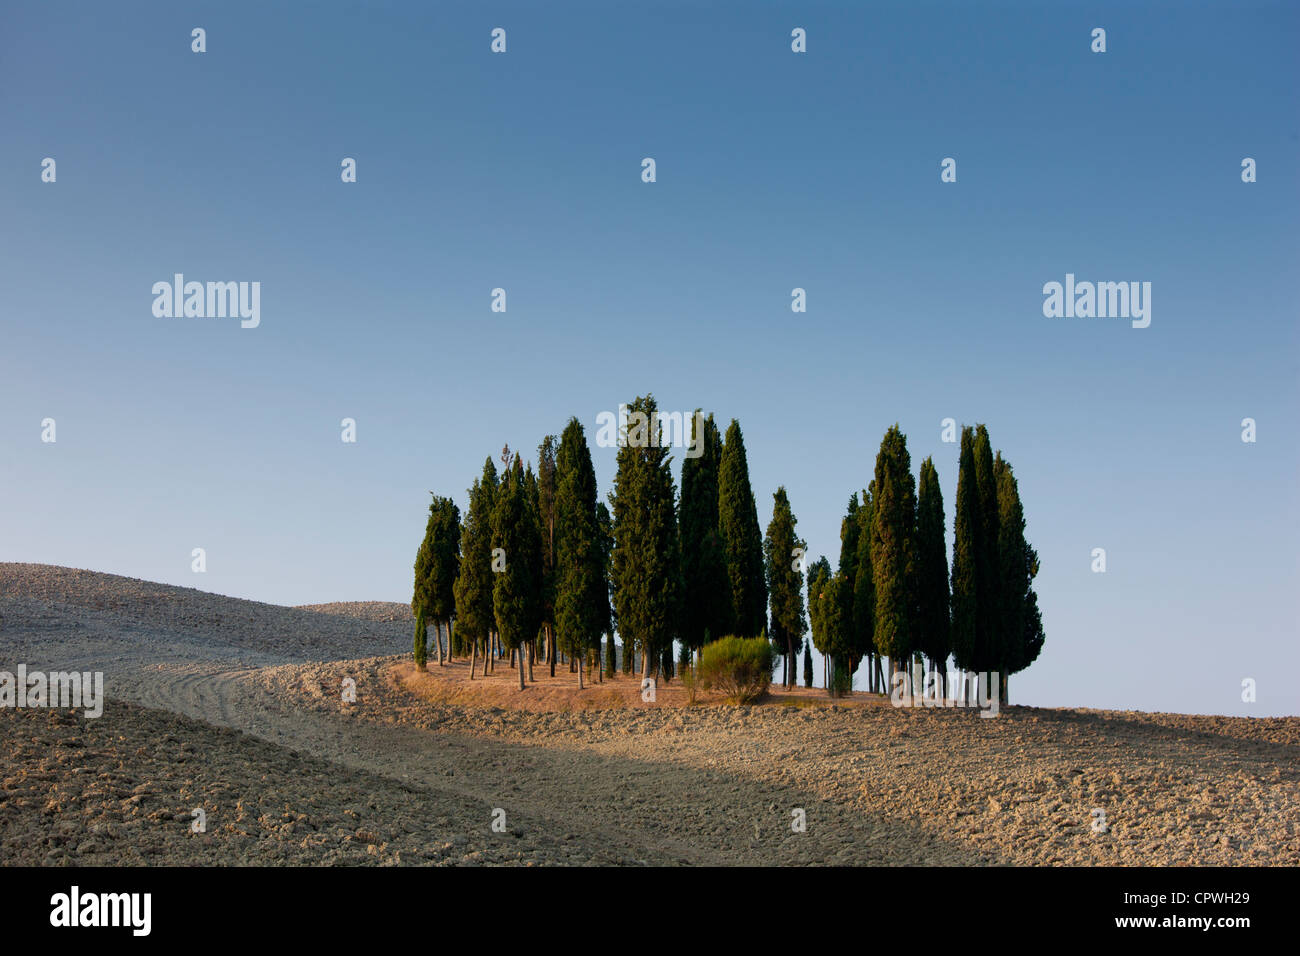 Grove of cypress trees in landscape by San Quirico D'Orcia in Val D'Orcia, Tuscany, Italy - Stock Image